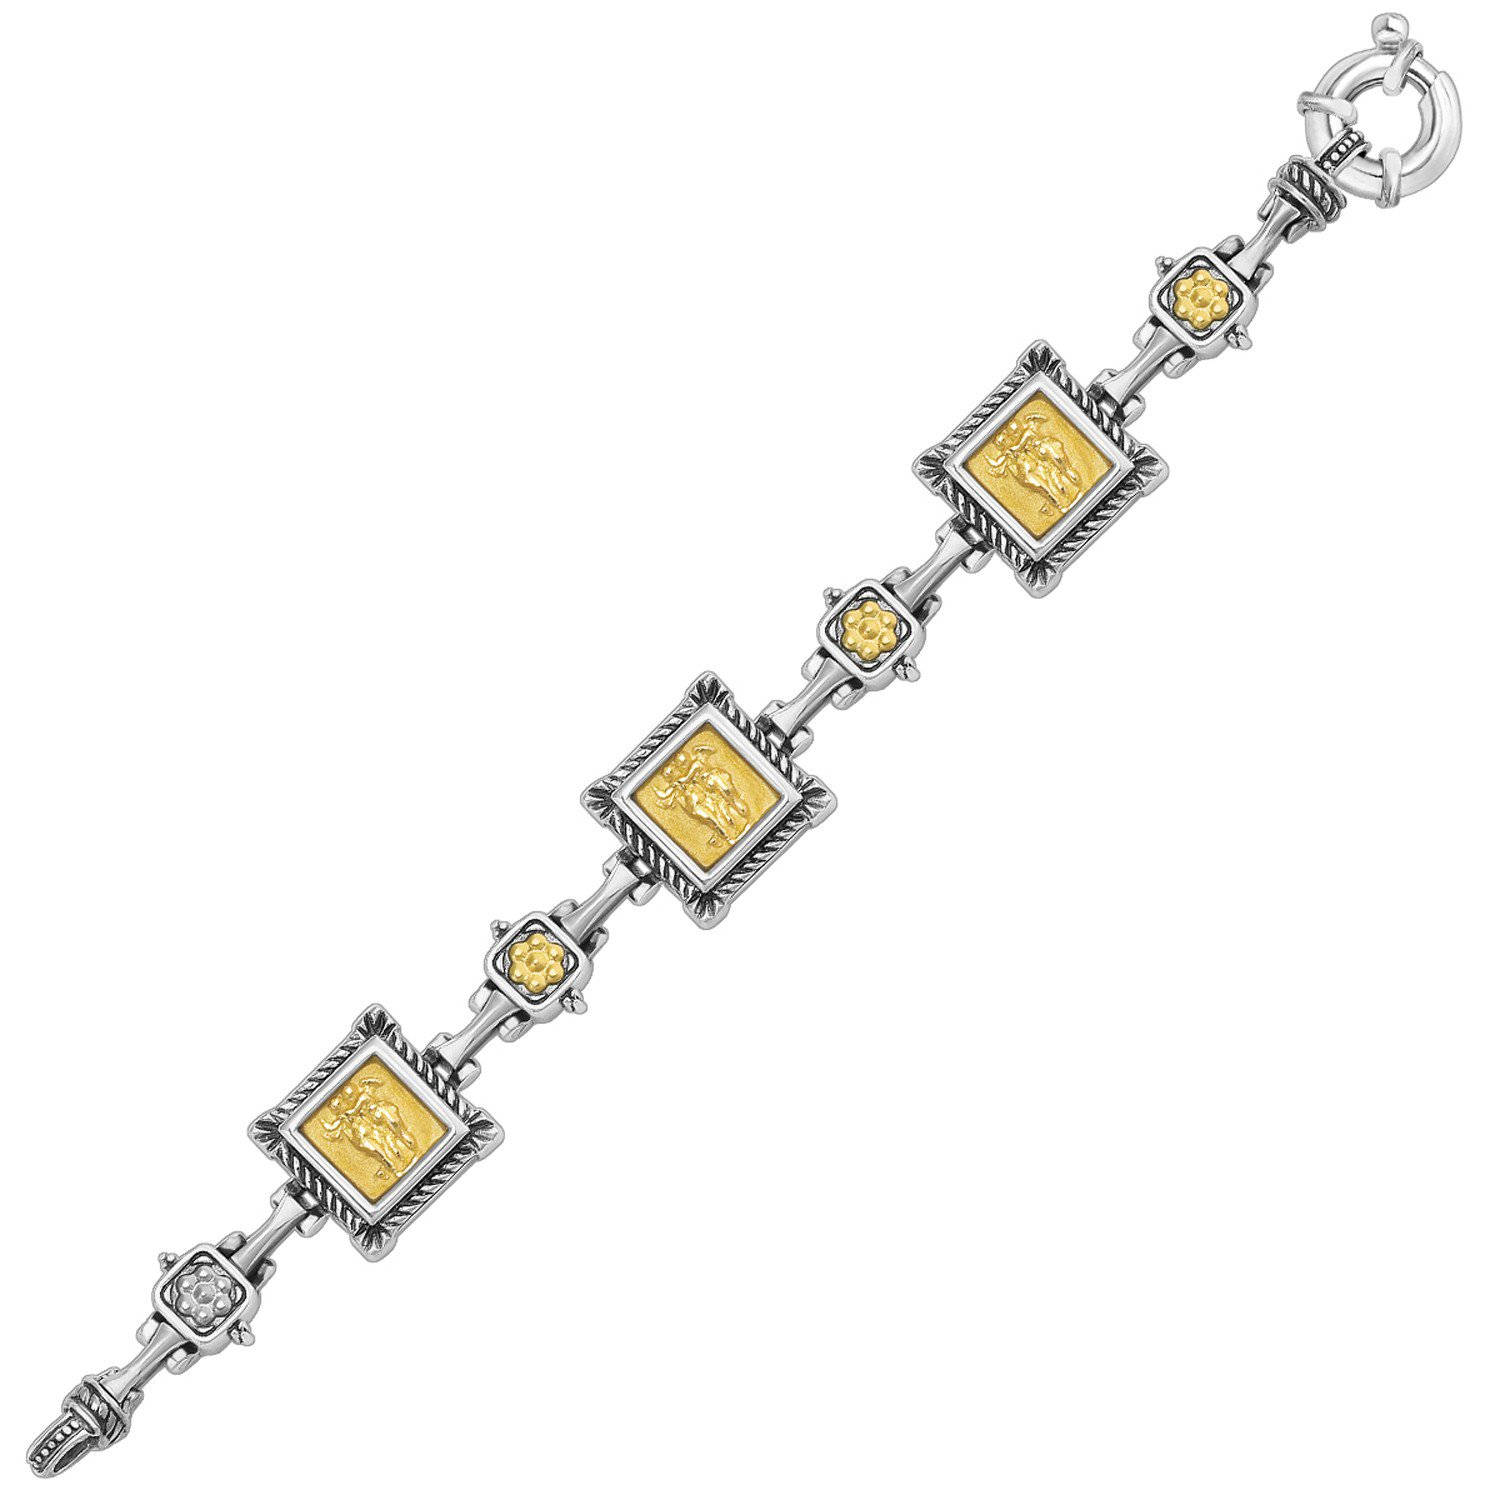 925 Sterling Silver 18K Yellow Gold Bracelet with Relief Style Square Links 7.5 inches